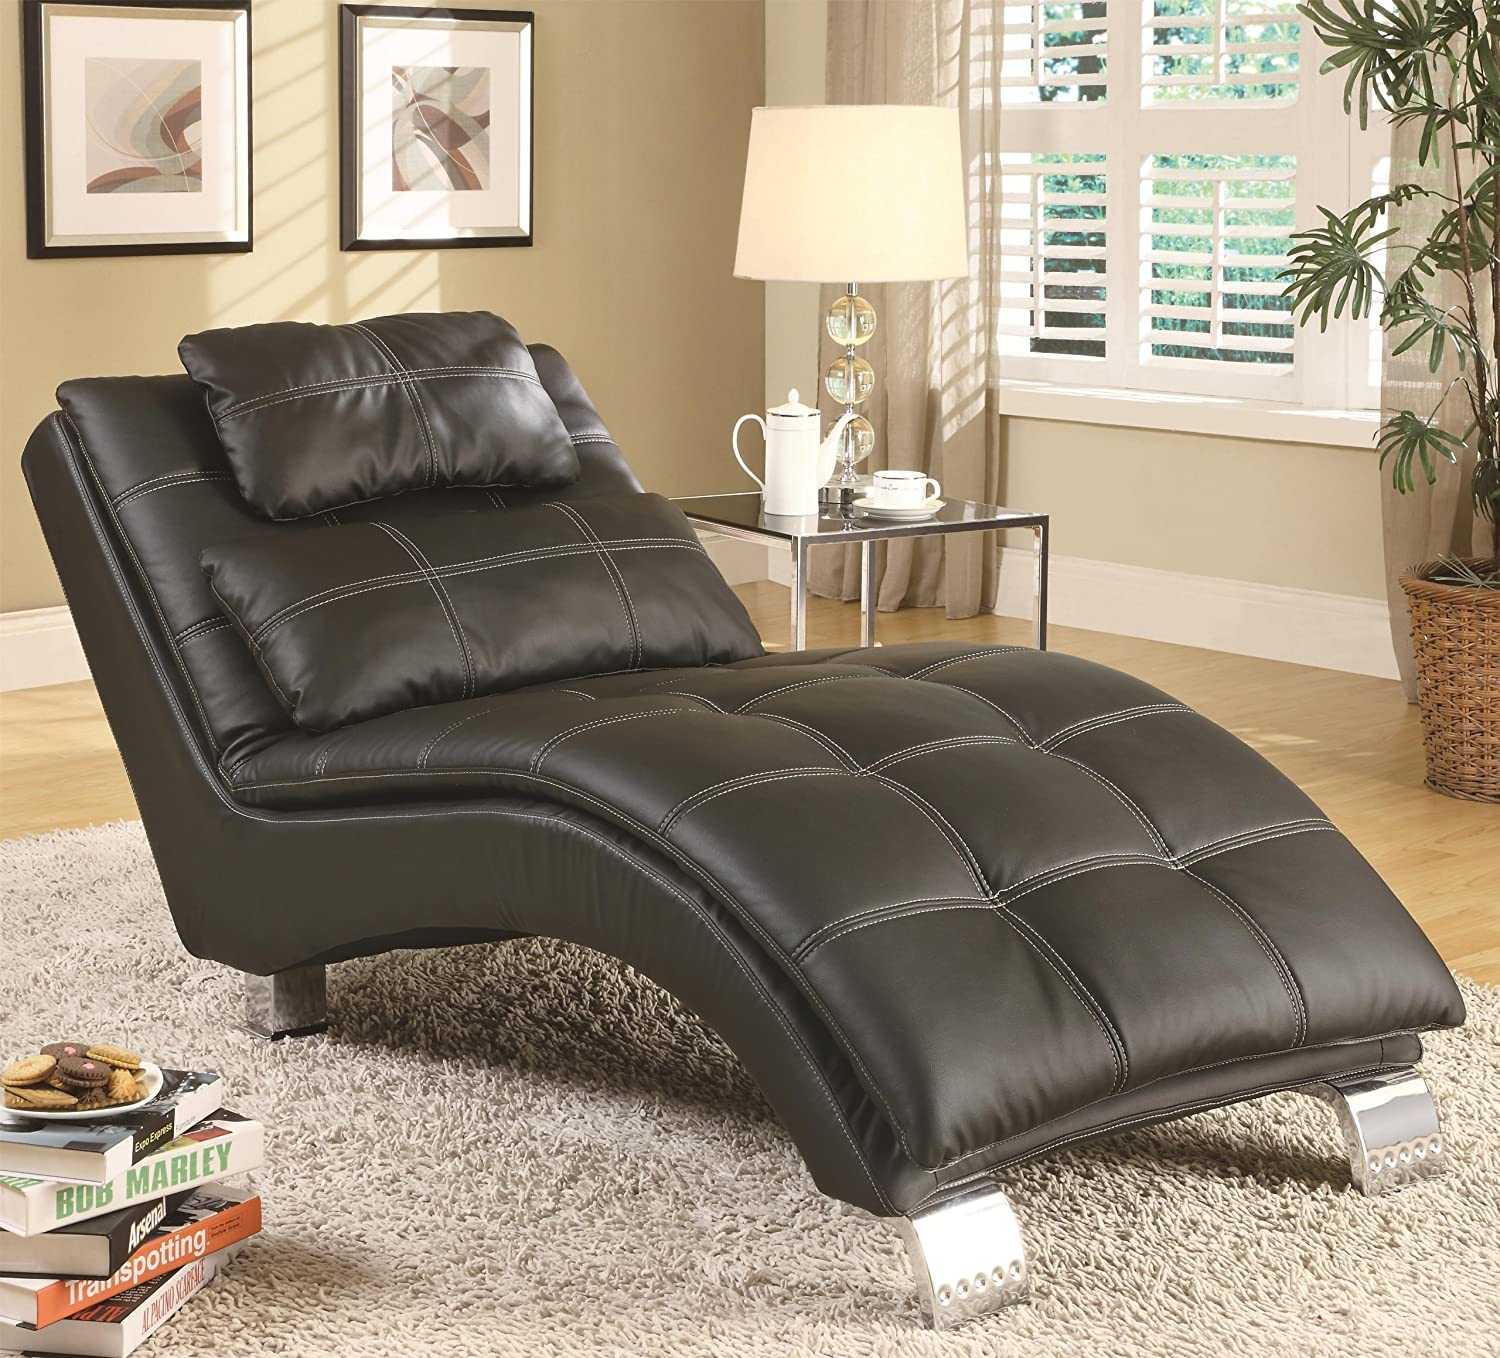 Chaise Lounge Chair Bedroom Chaise Lounge Chairs dact